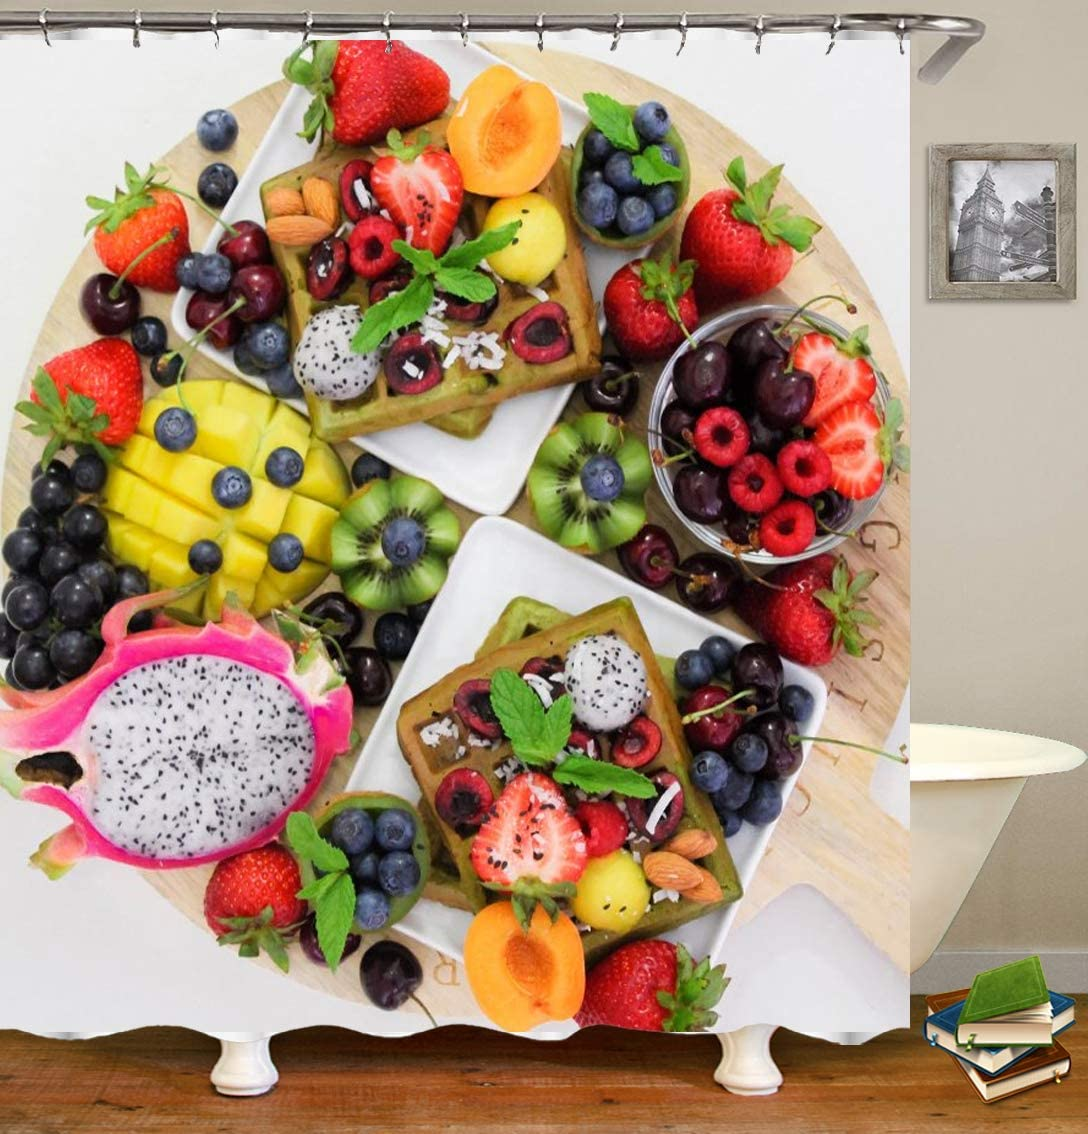 TIAQUN Funny Fruit Platter Shower Curtain, Diverse Fruit Foods colorful Shower Curtain for Bathroom Decor with Hooks. 59x70Inch